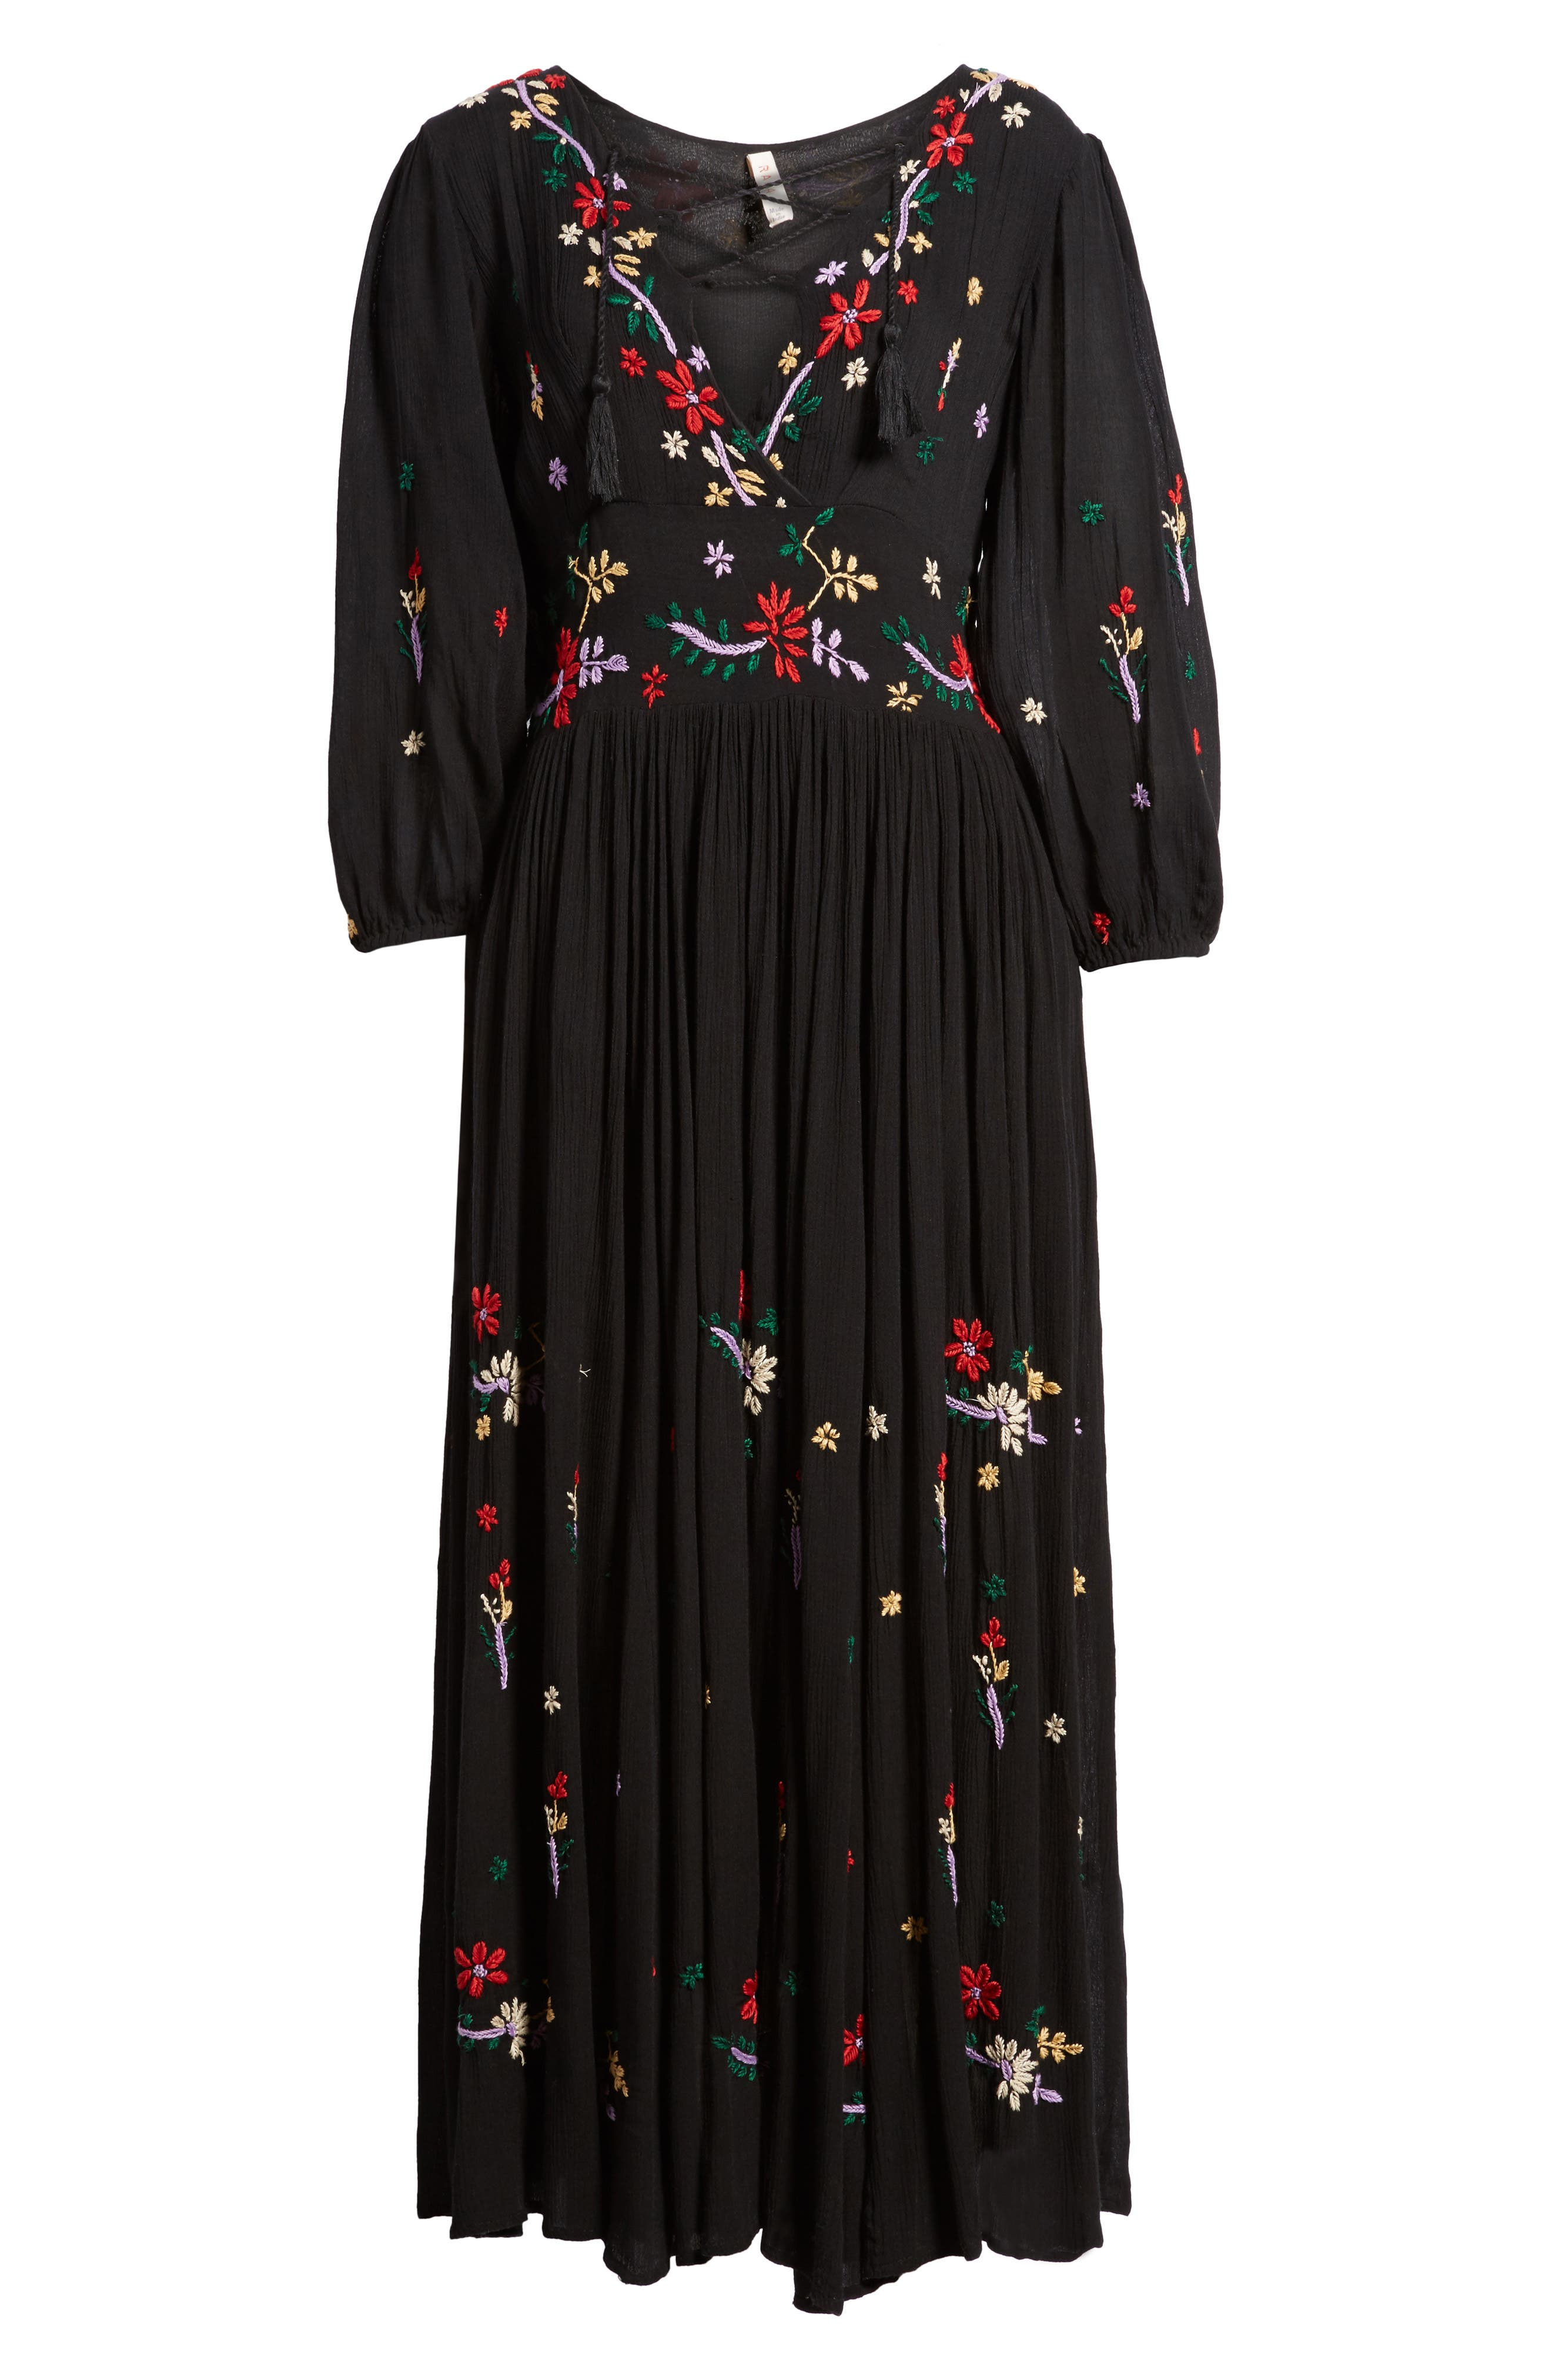 Sammy Embroidered Dress,                             Alternate thumbnail 6, color,                             001